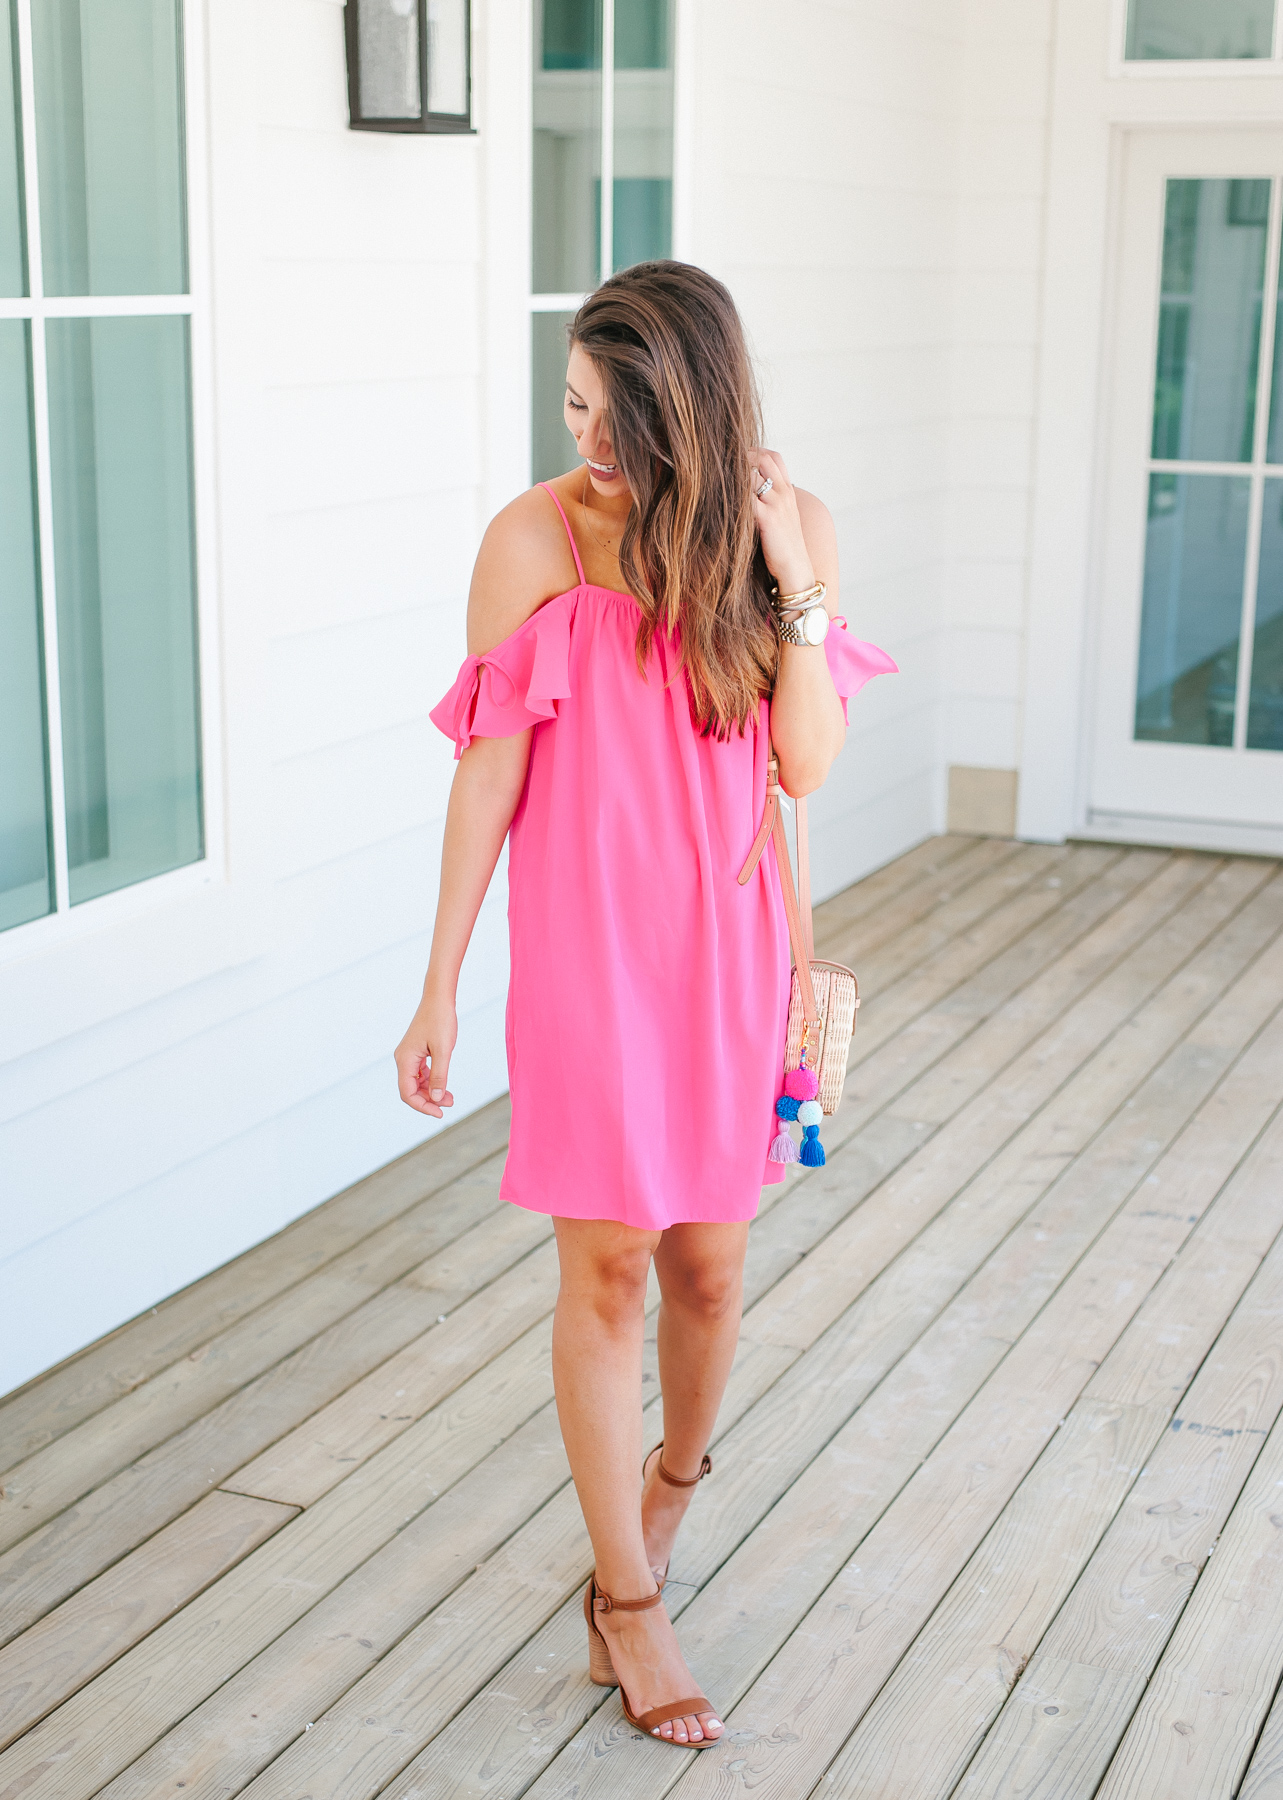 Dress Up Buttercup, Dede Raad, Houston blogger, fashion blogger, Cold Shoulder Dress